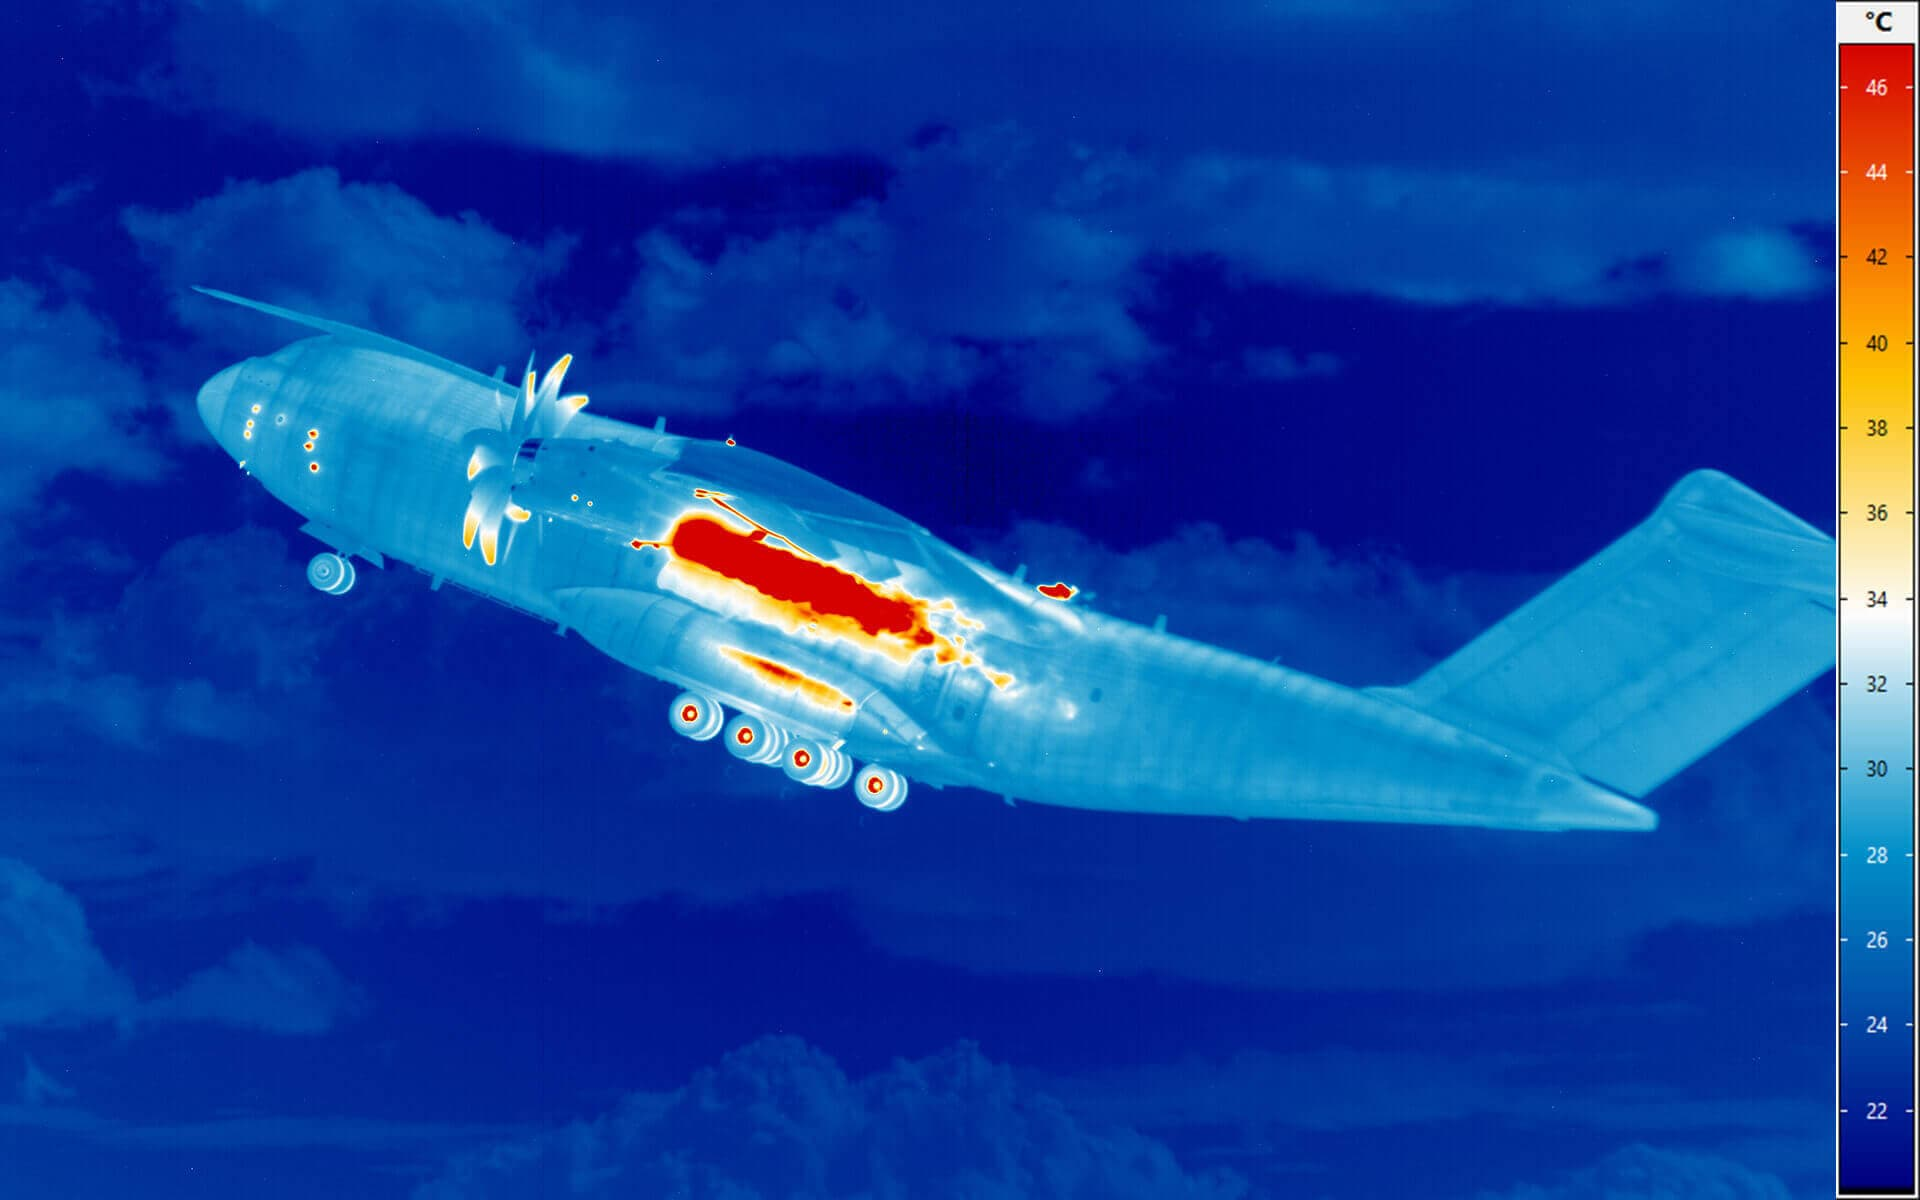 High-Speed-Thermografie: Start eines Airbus